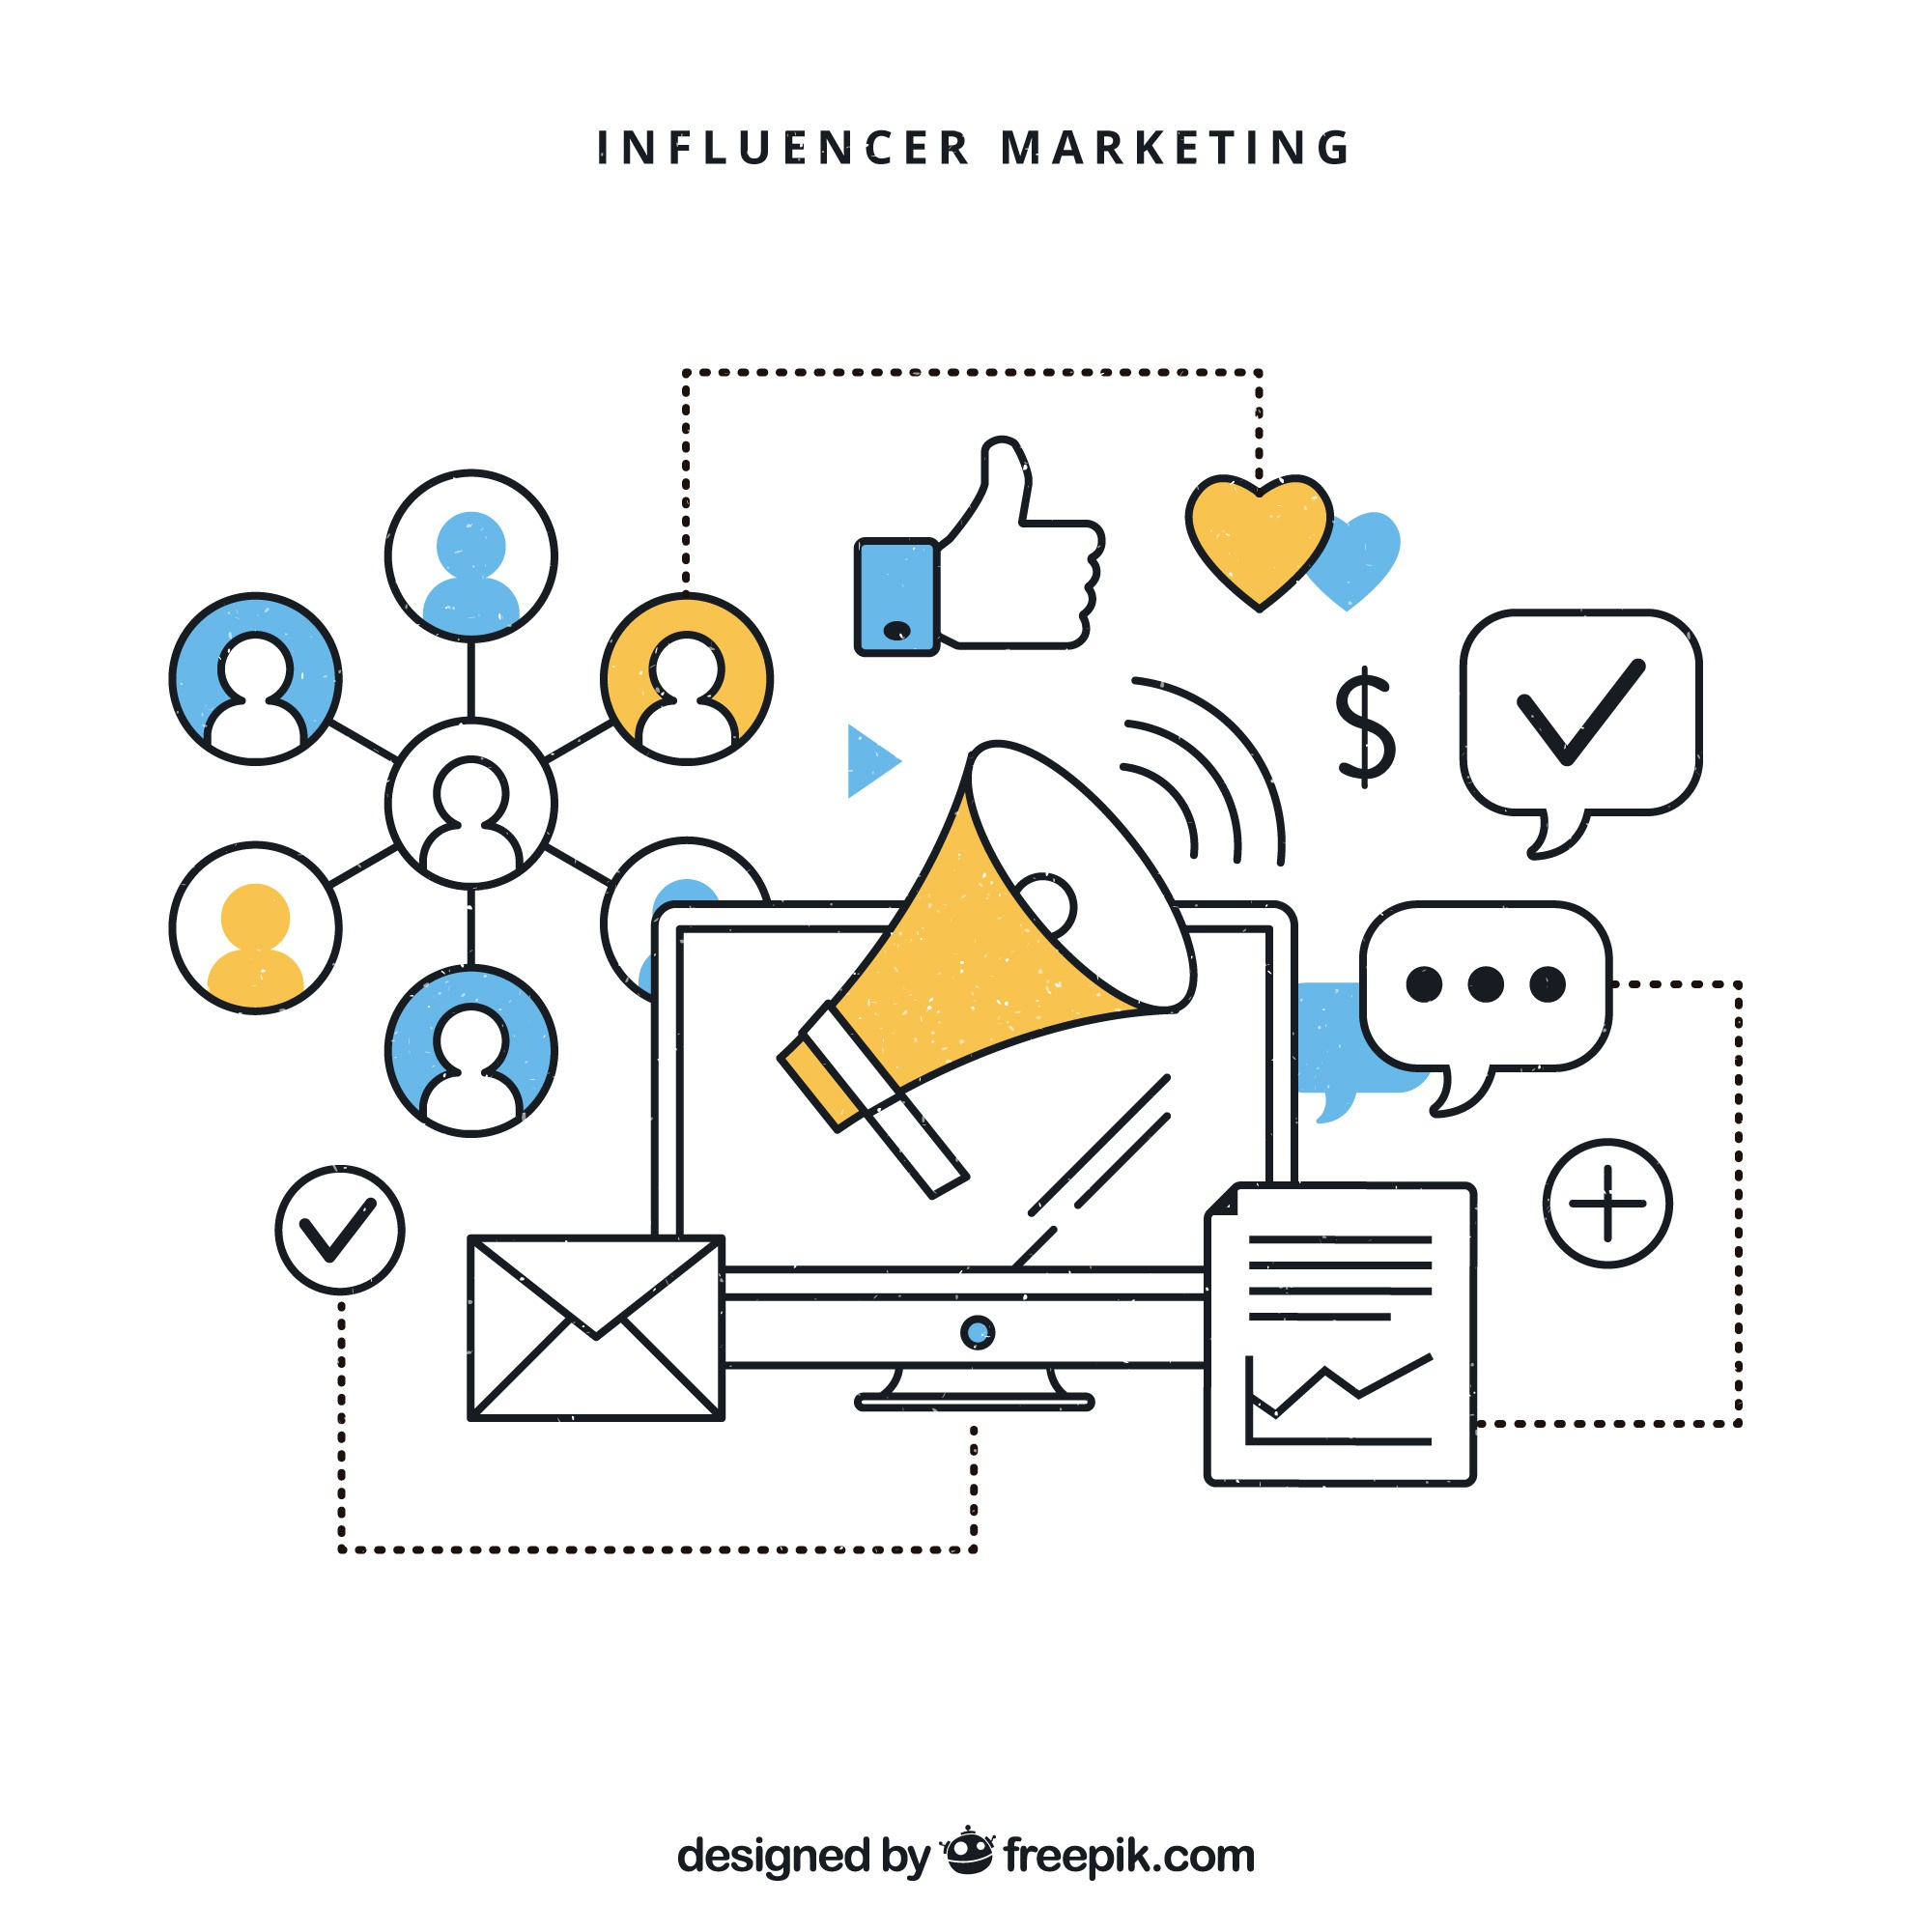 Influencer marketing infographic vector